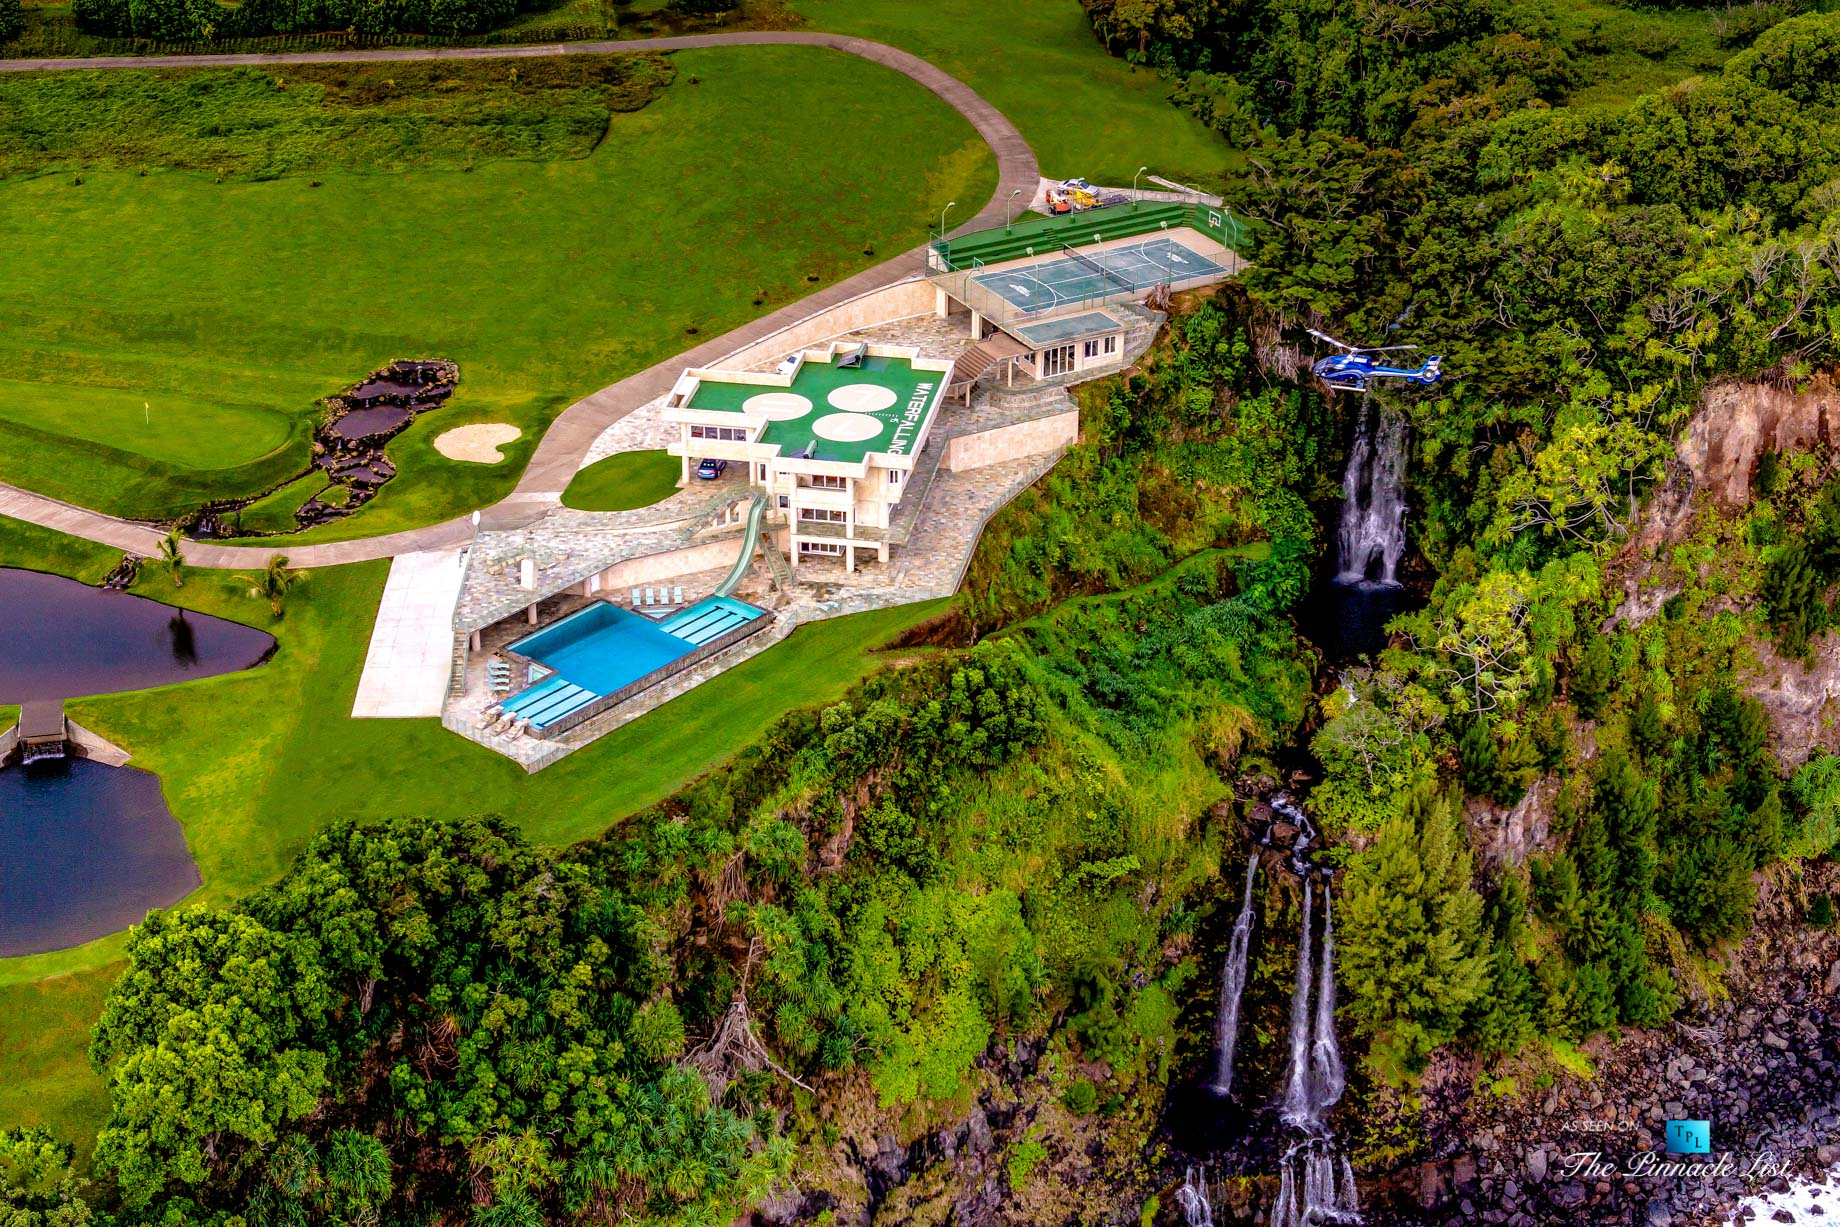 Water Falling Estate - 32-1056 Old Mamalahoa Hwy, Ninole, HI, USA